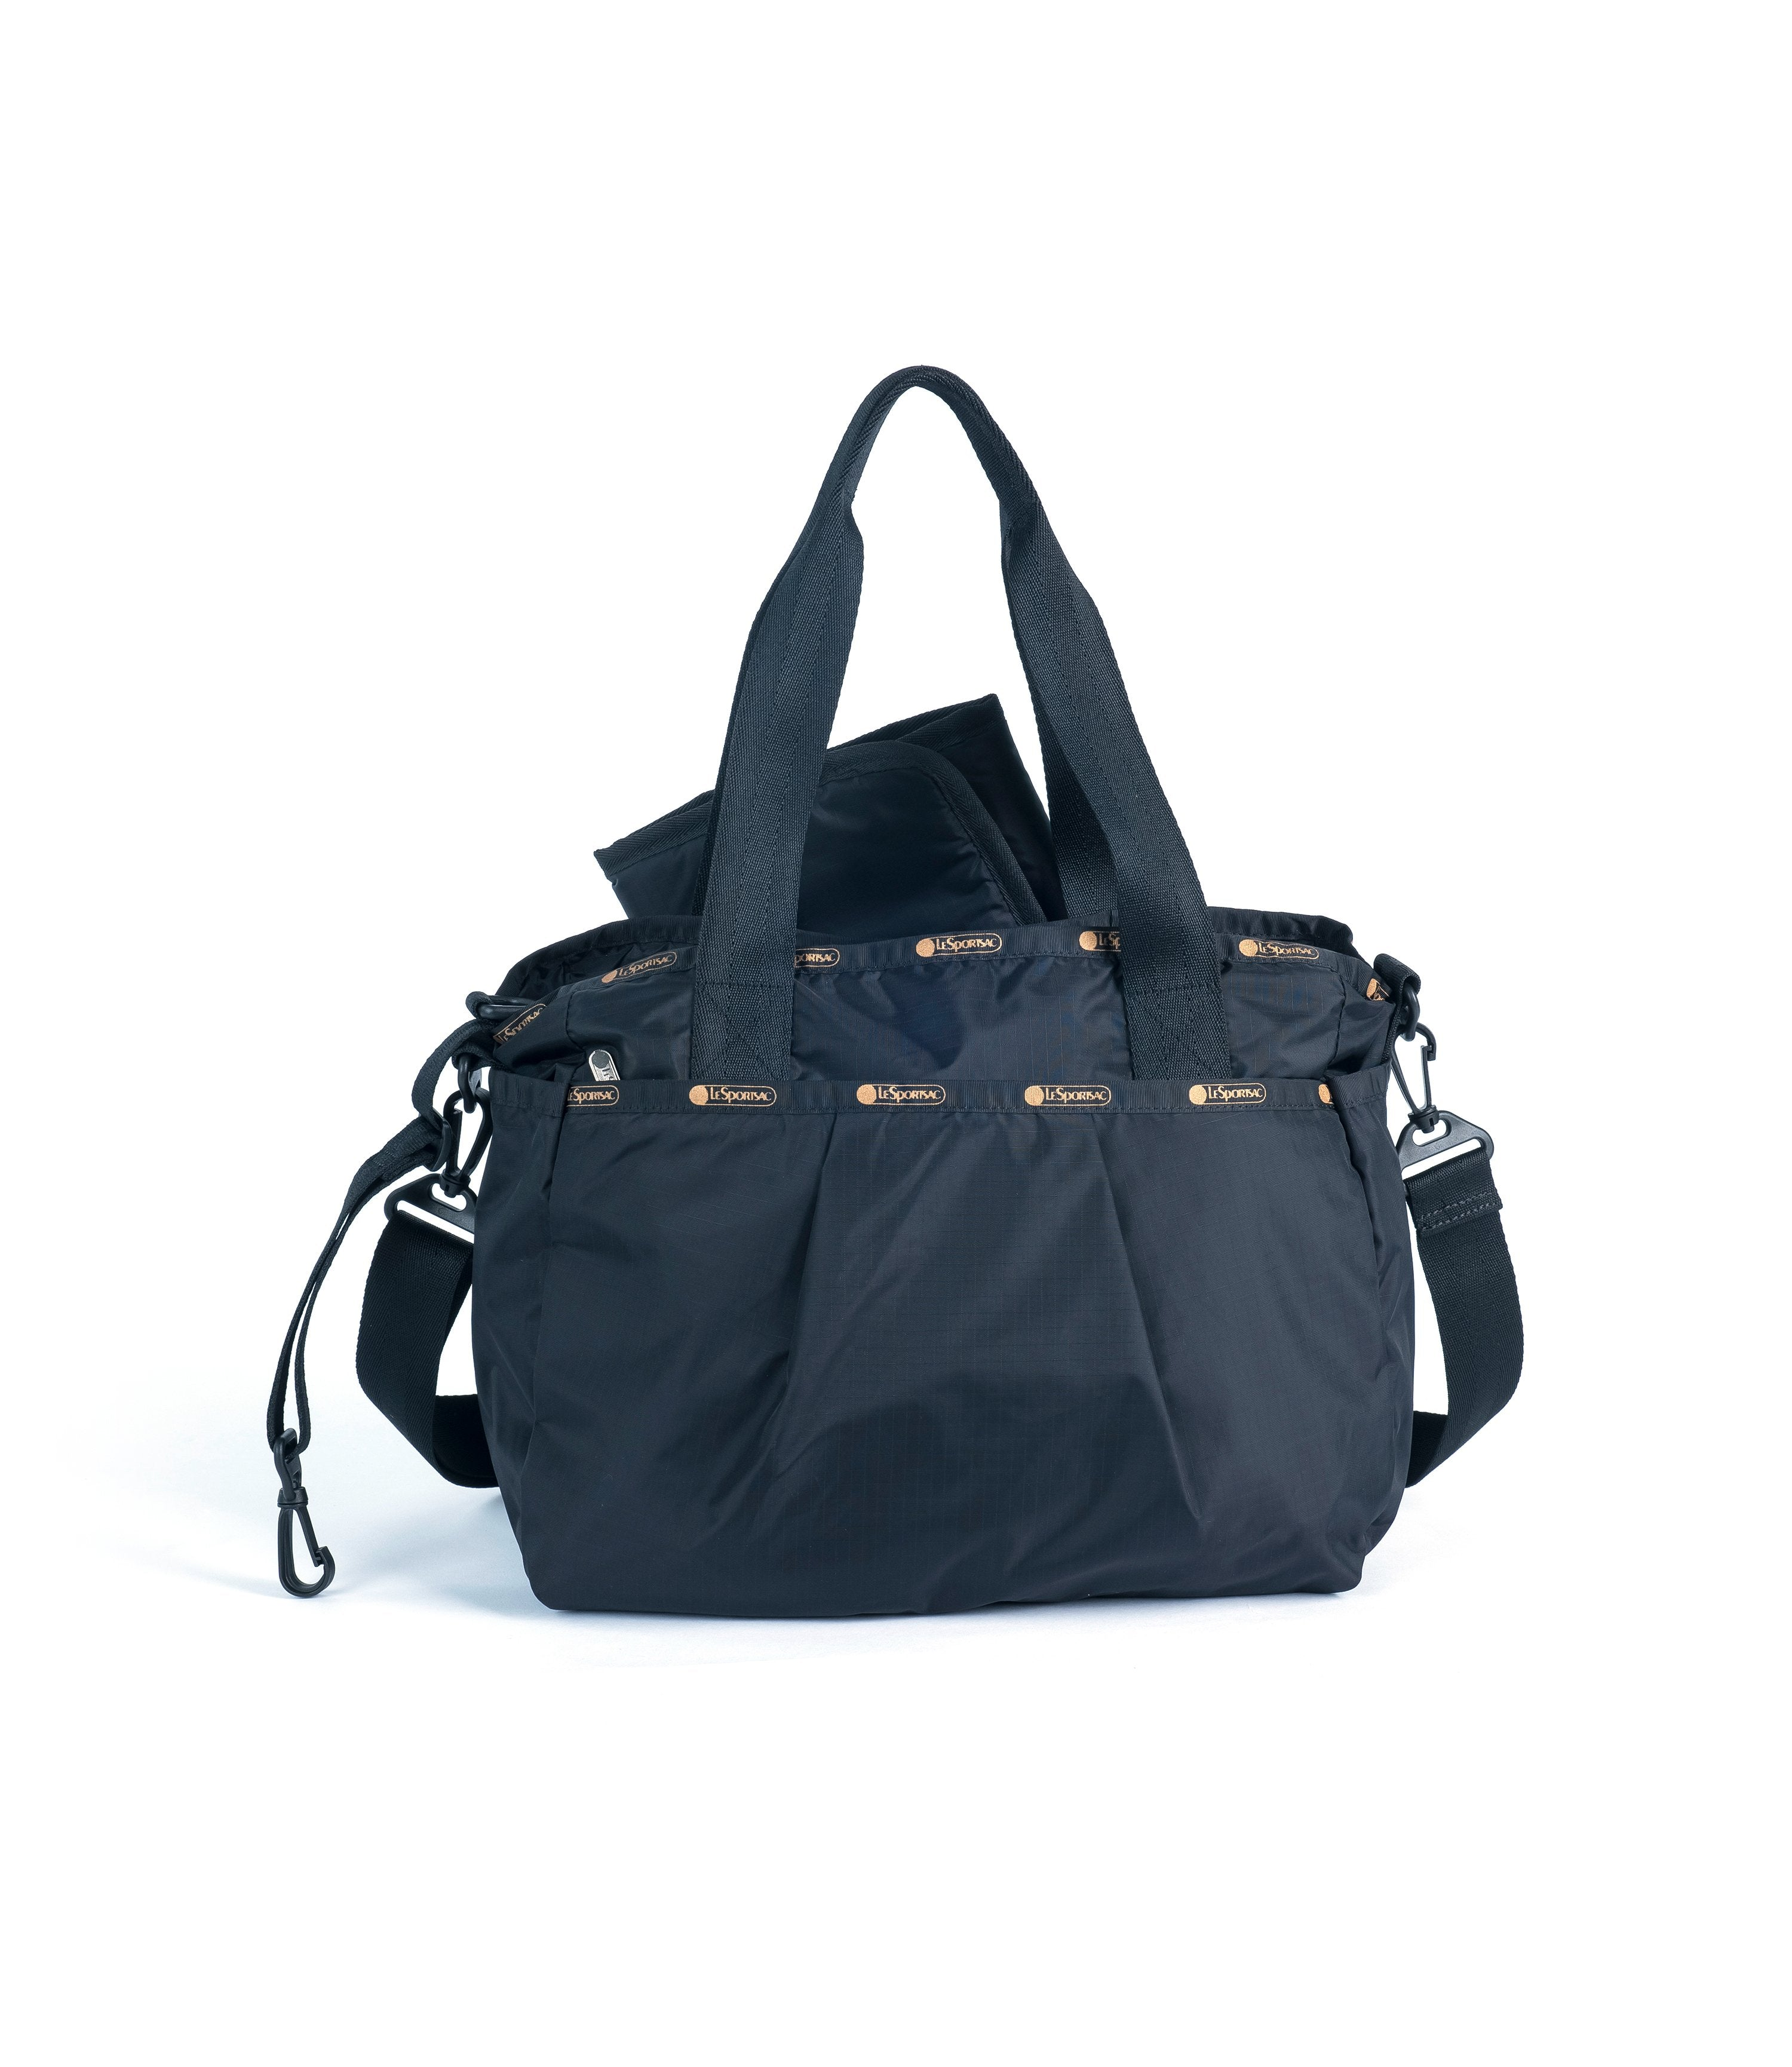 LeSportsac - Pleated Posey Bag - Handbags - Black Glitz